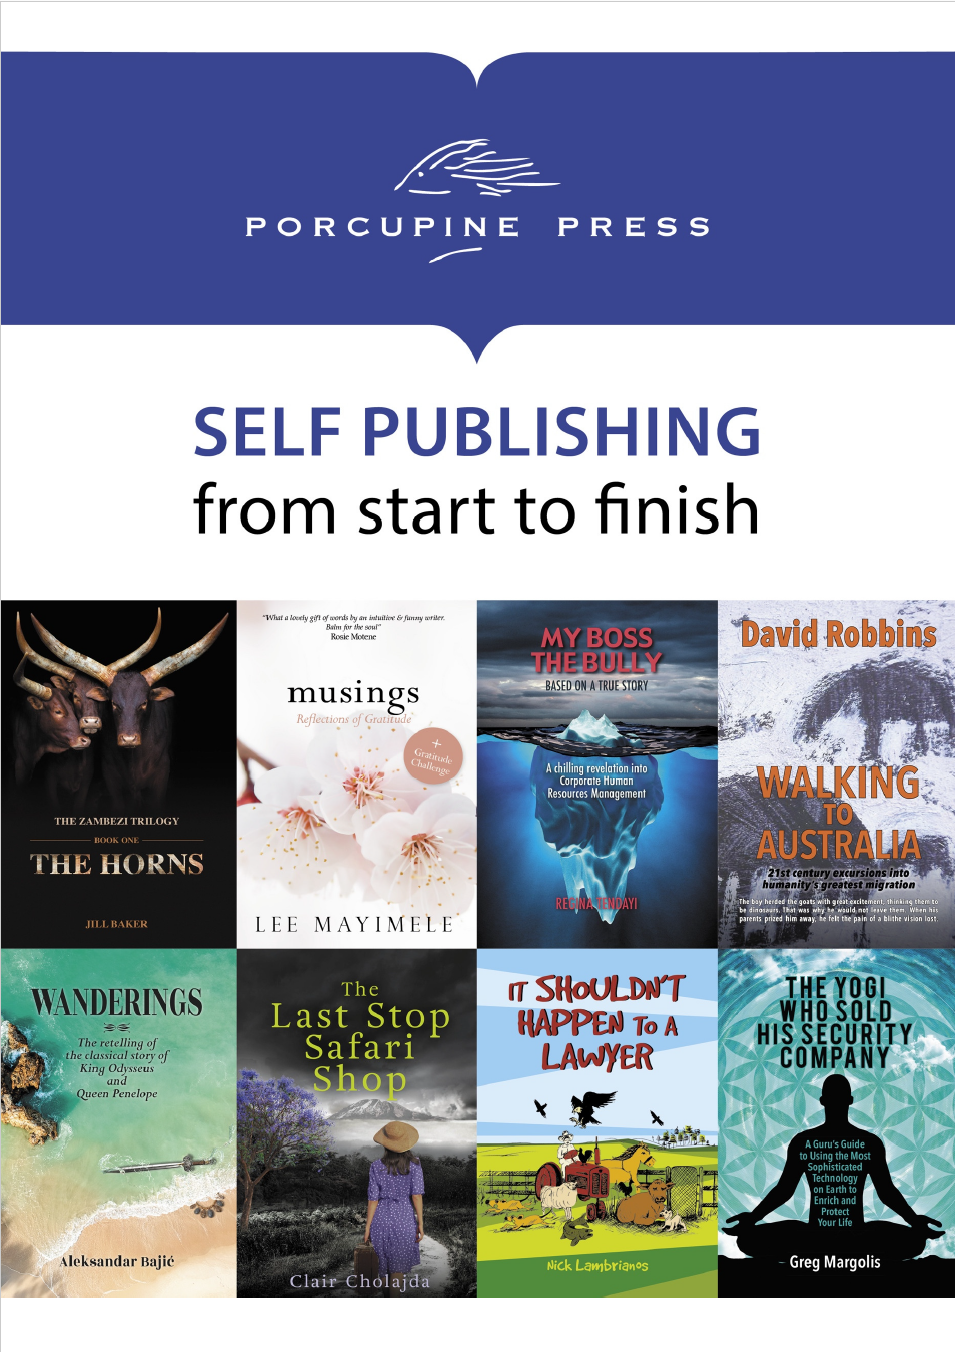 Self publishing booklet front cover